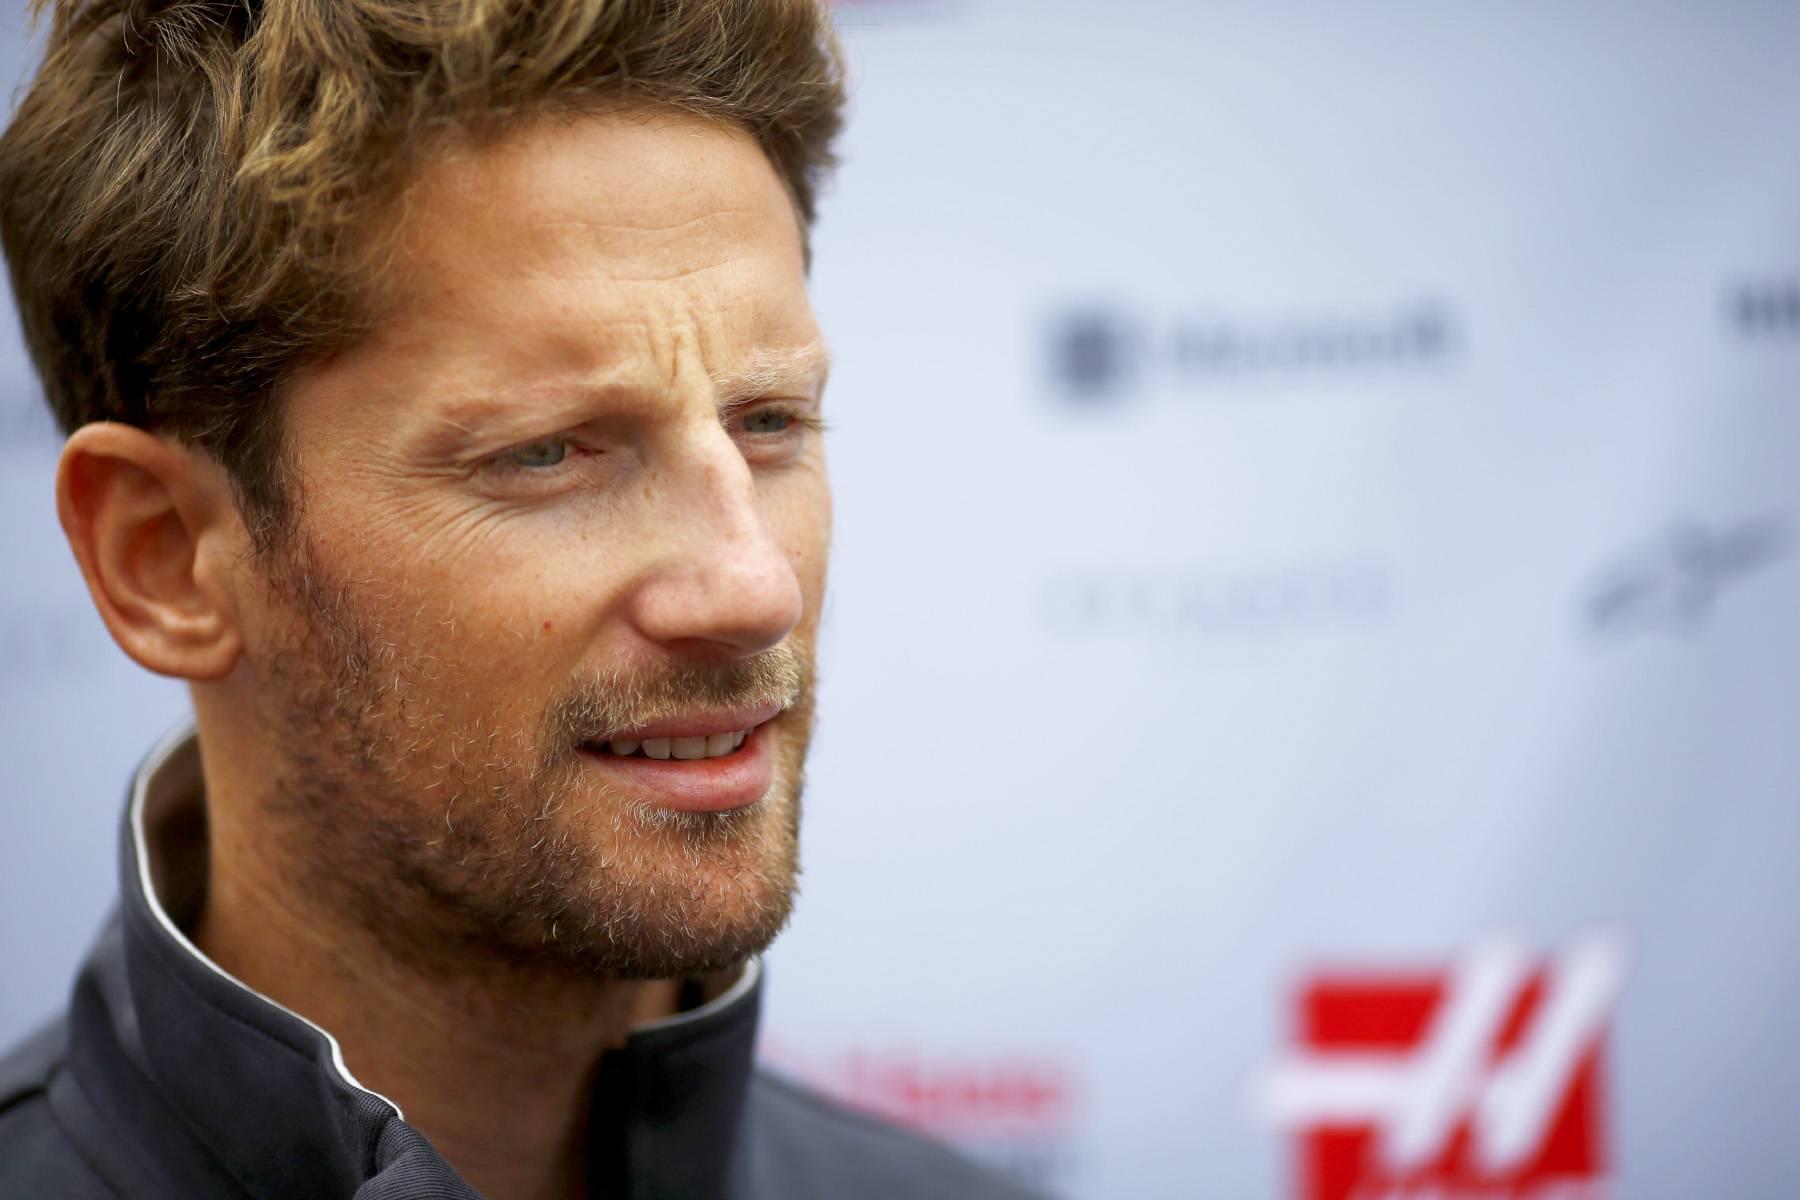 Romain Grosjean speaks to reporters at the 2017 Japanese Grand Prix.